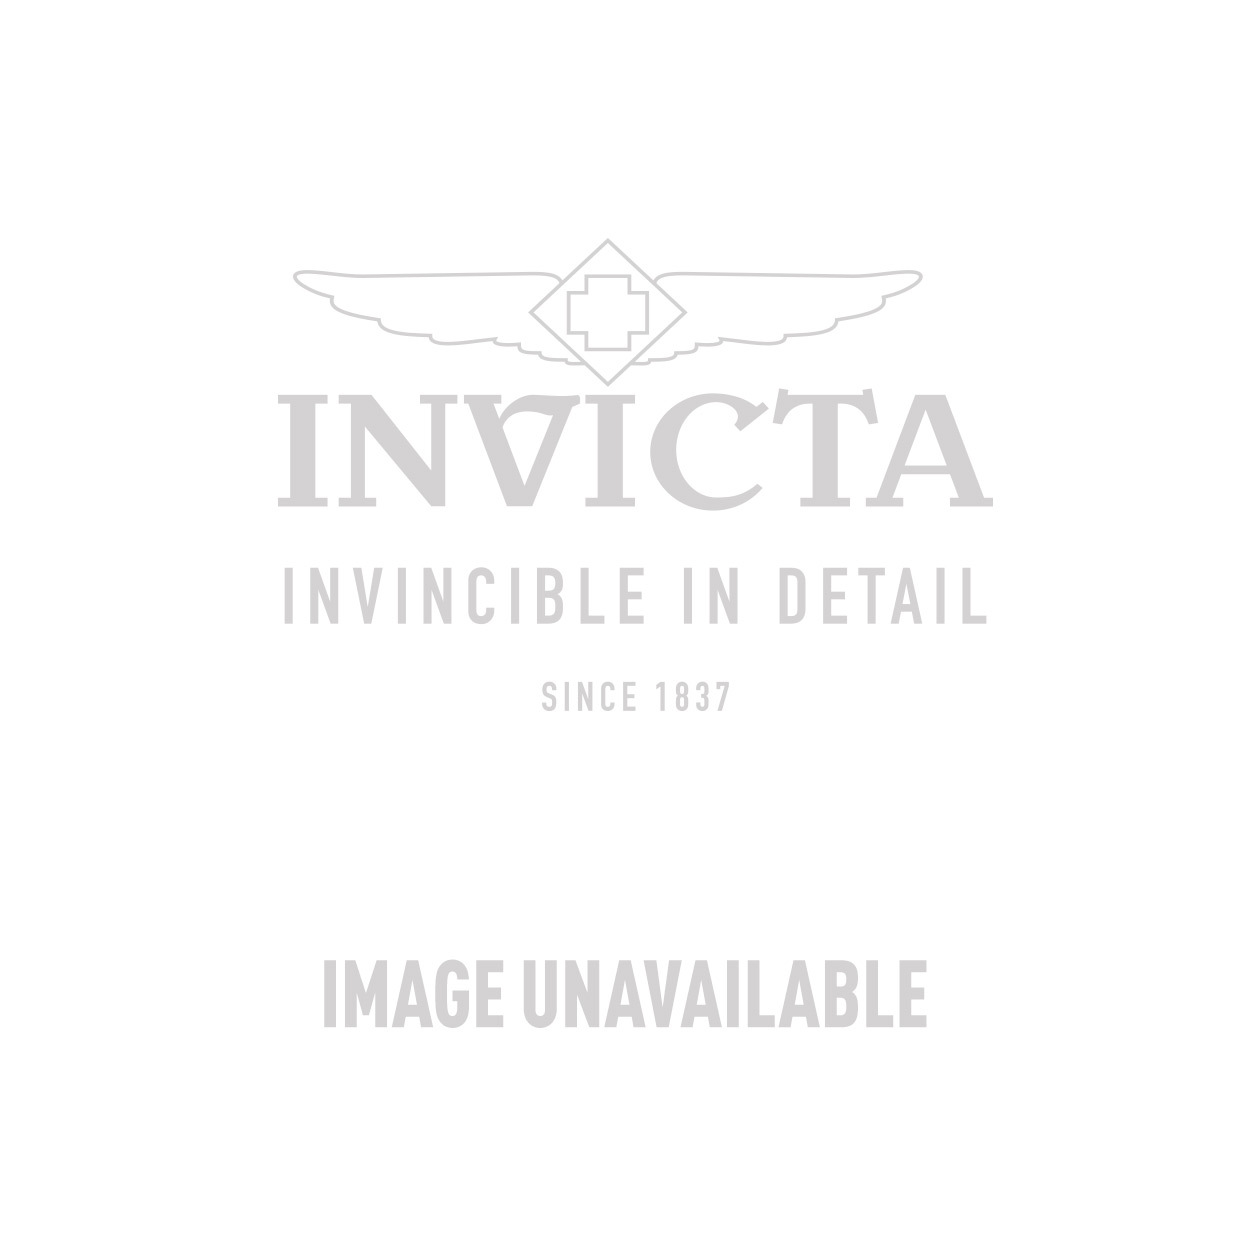 Invicta Sea Hunter Swiss Made Quartz Watch - Gold case with Gold tone Stainless Steel band - Model 11238